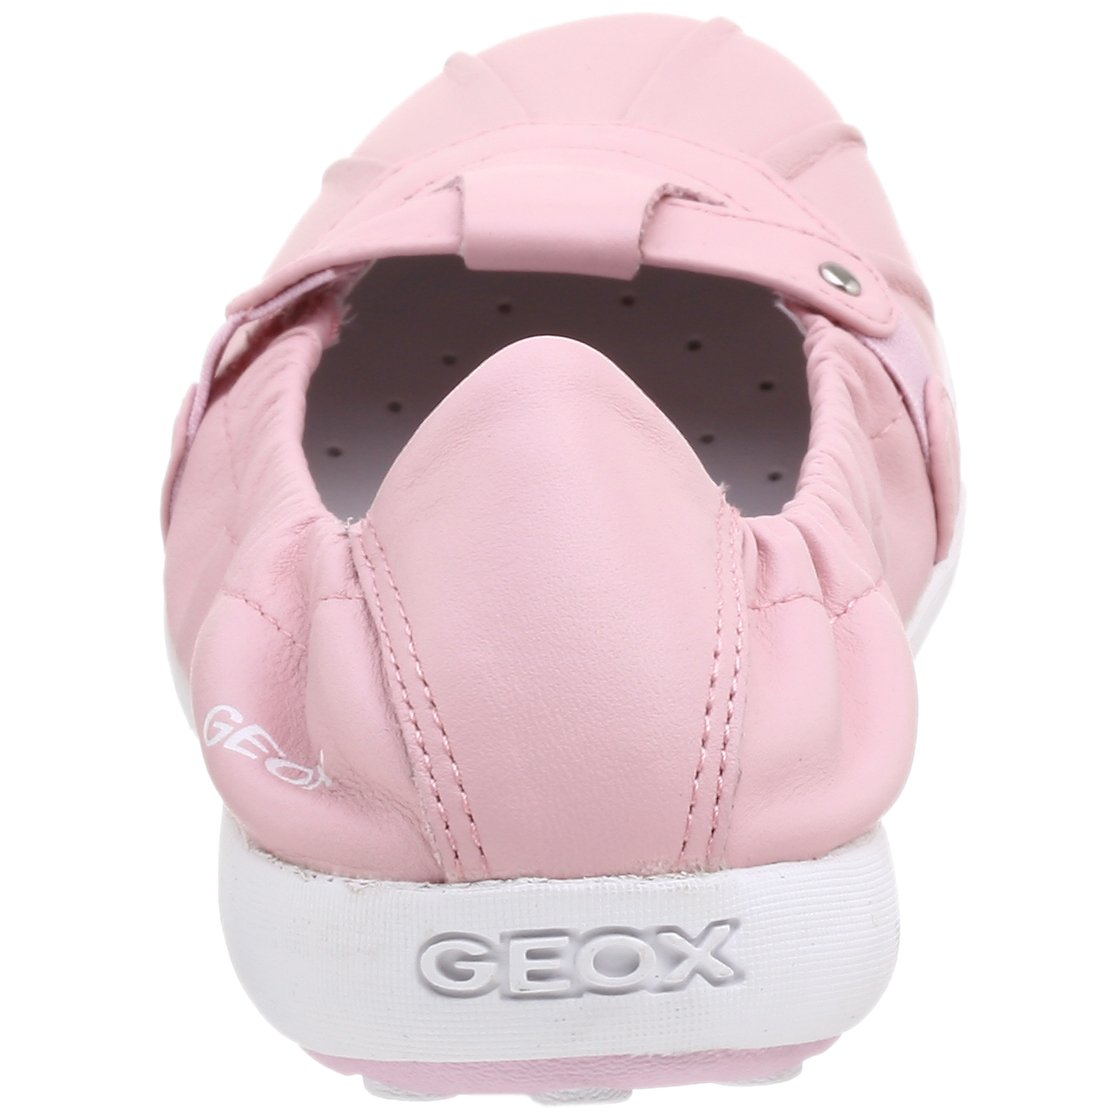 Geox Little Kid//Big Kid Jodie 5 Ballet Flat